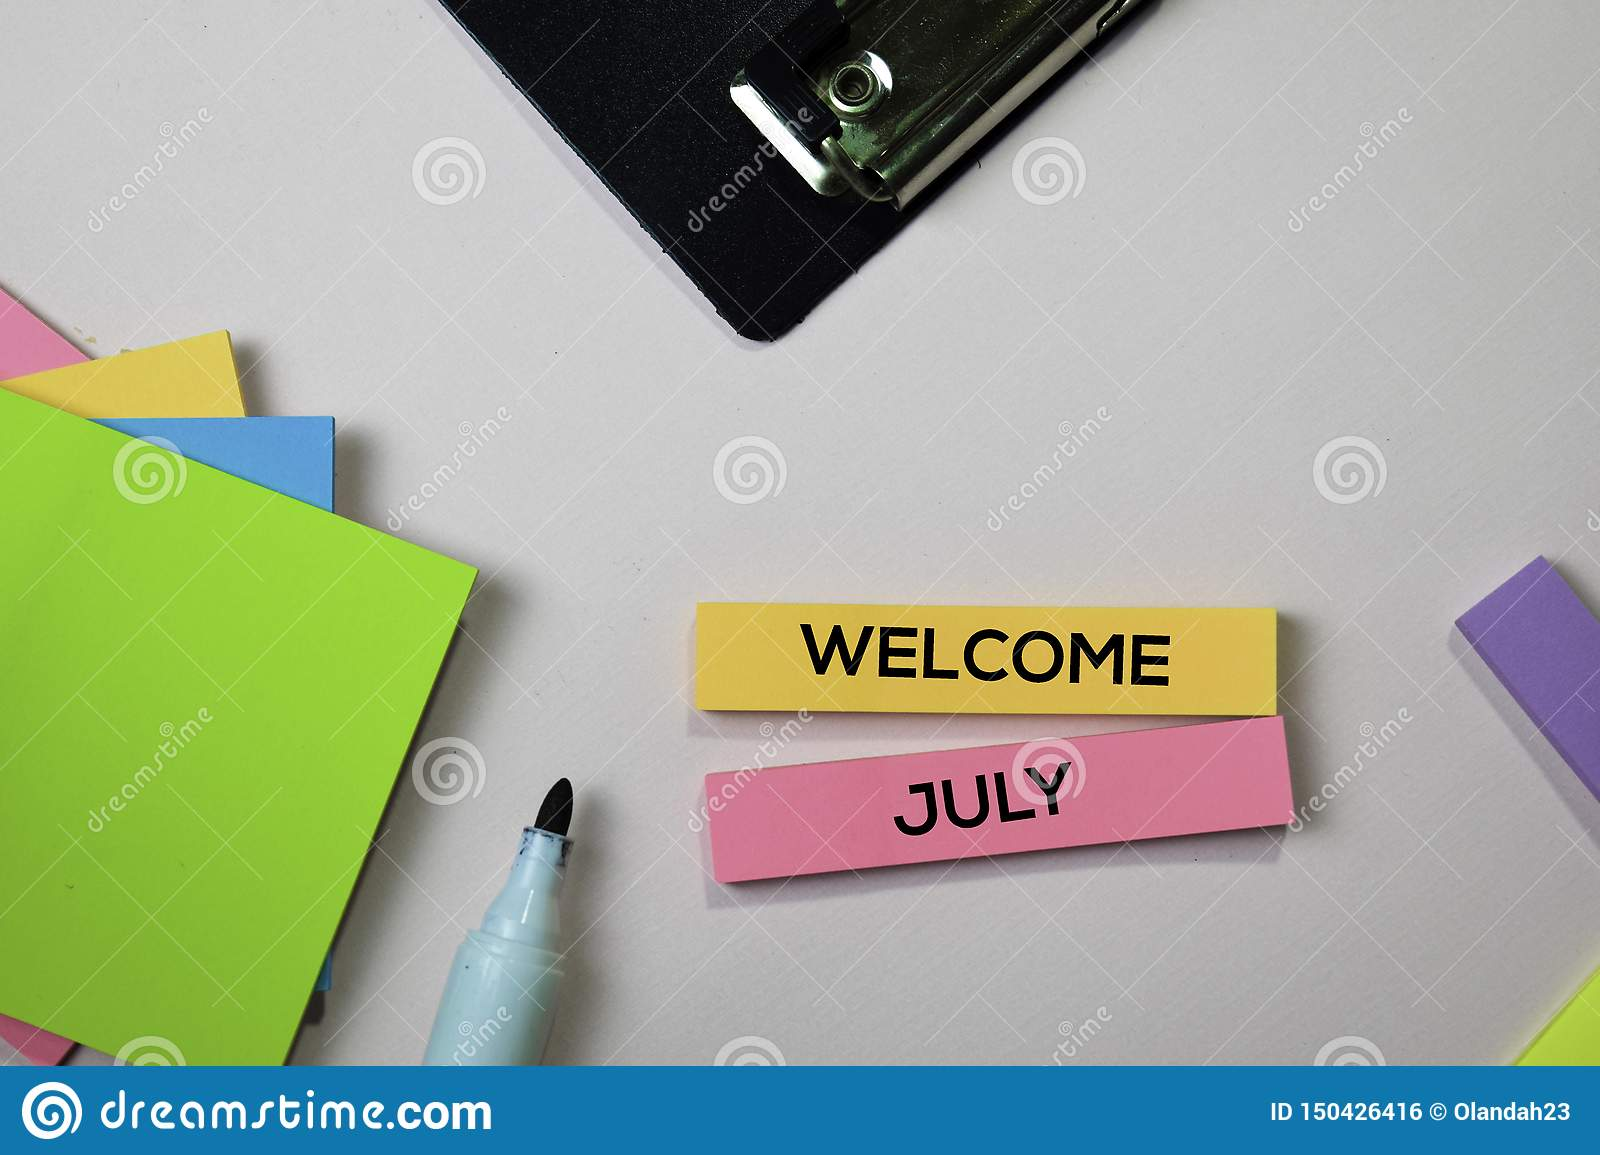 Welcome July text on sticky notes with office desk concept